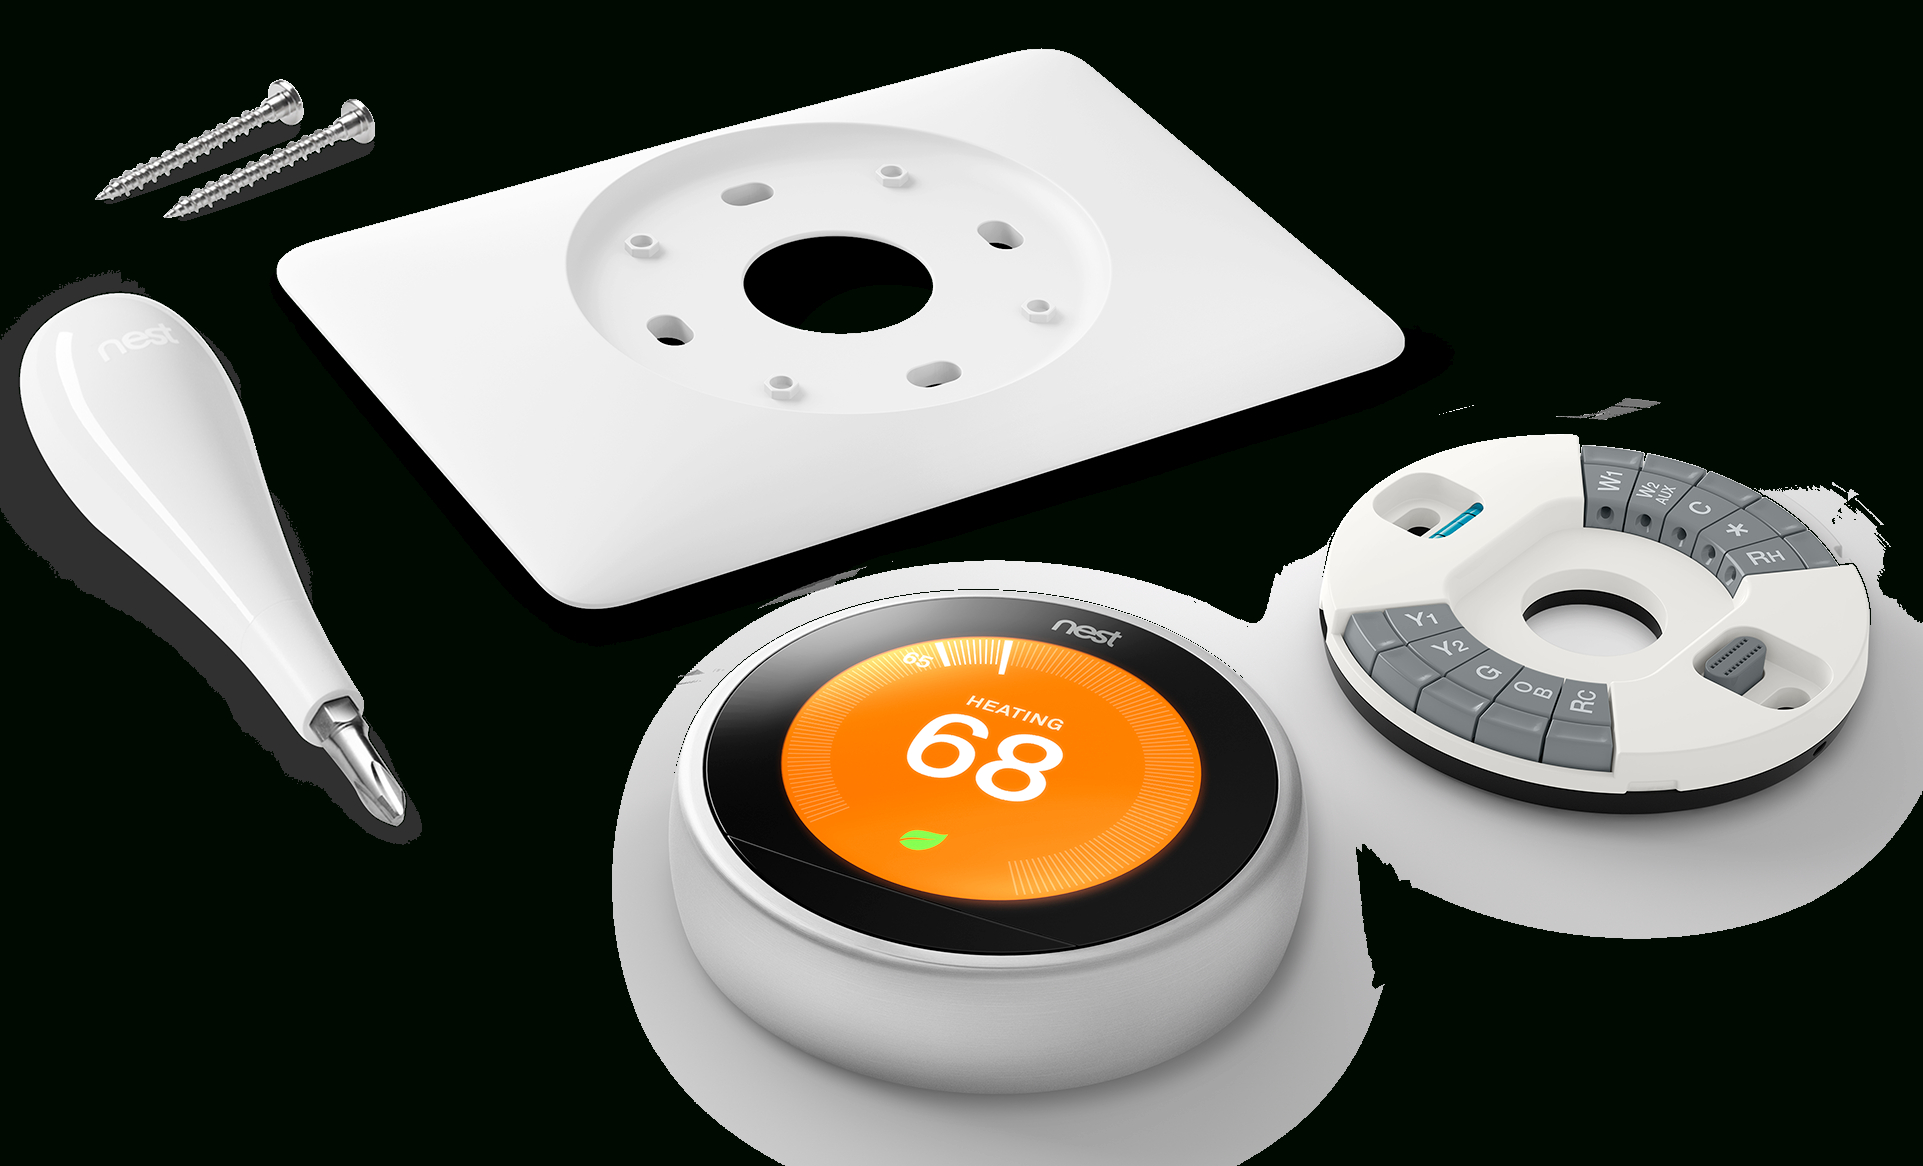 How To Install Your Nest Thermostat - Nest Pro Wiring Diagram